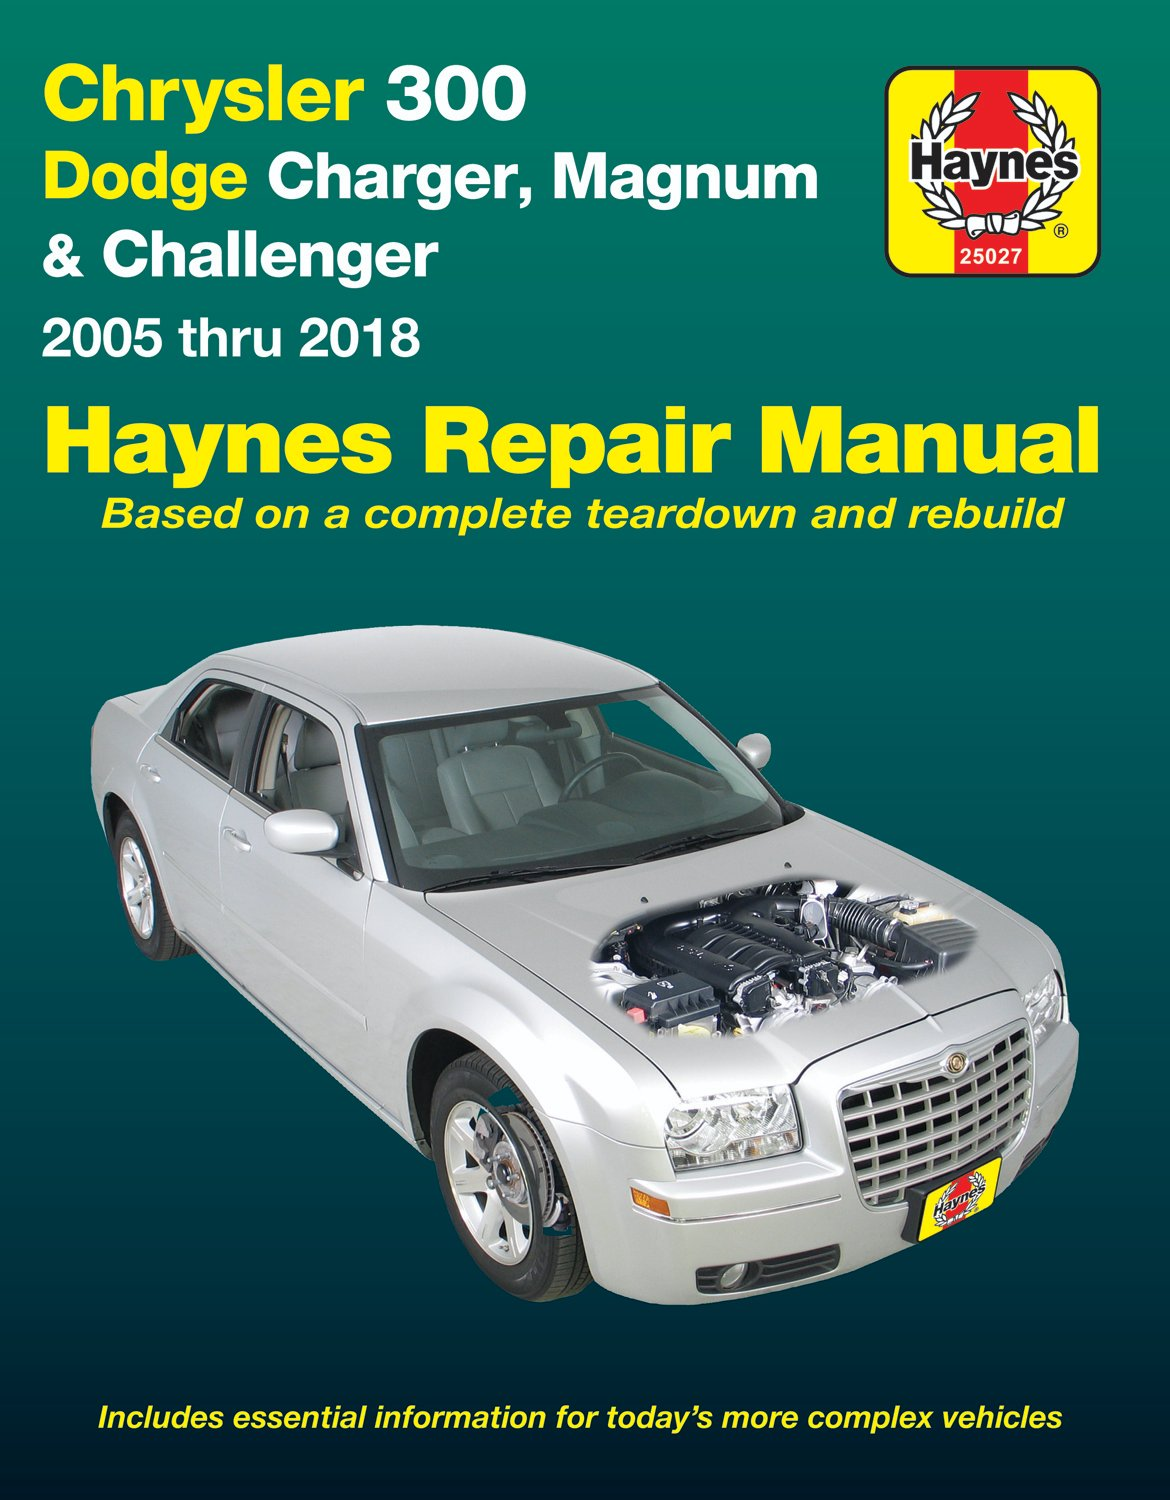 [Manuel US en Anglais] Chrysler 300 Dodge Charger & Magnum  '05 -  '10